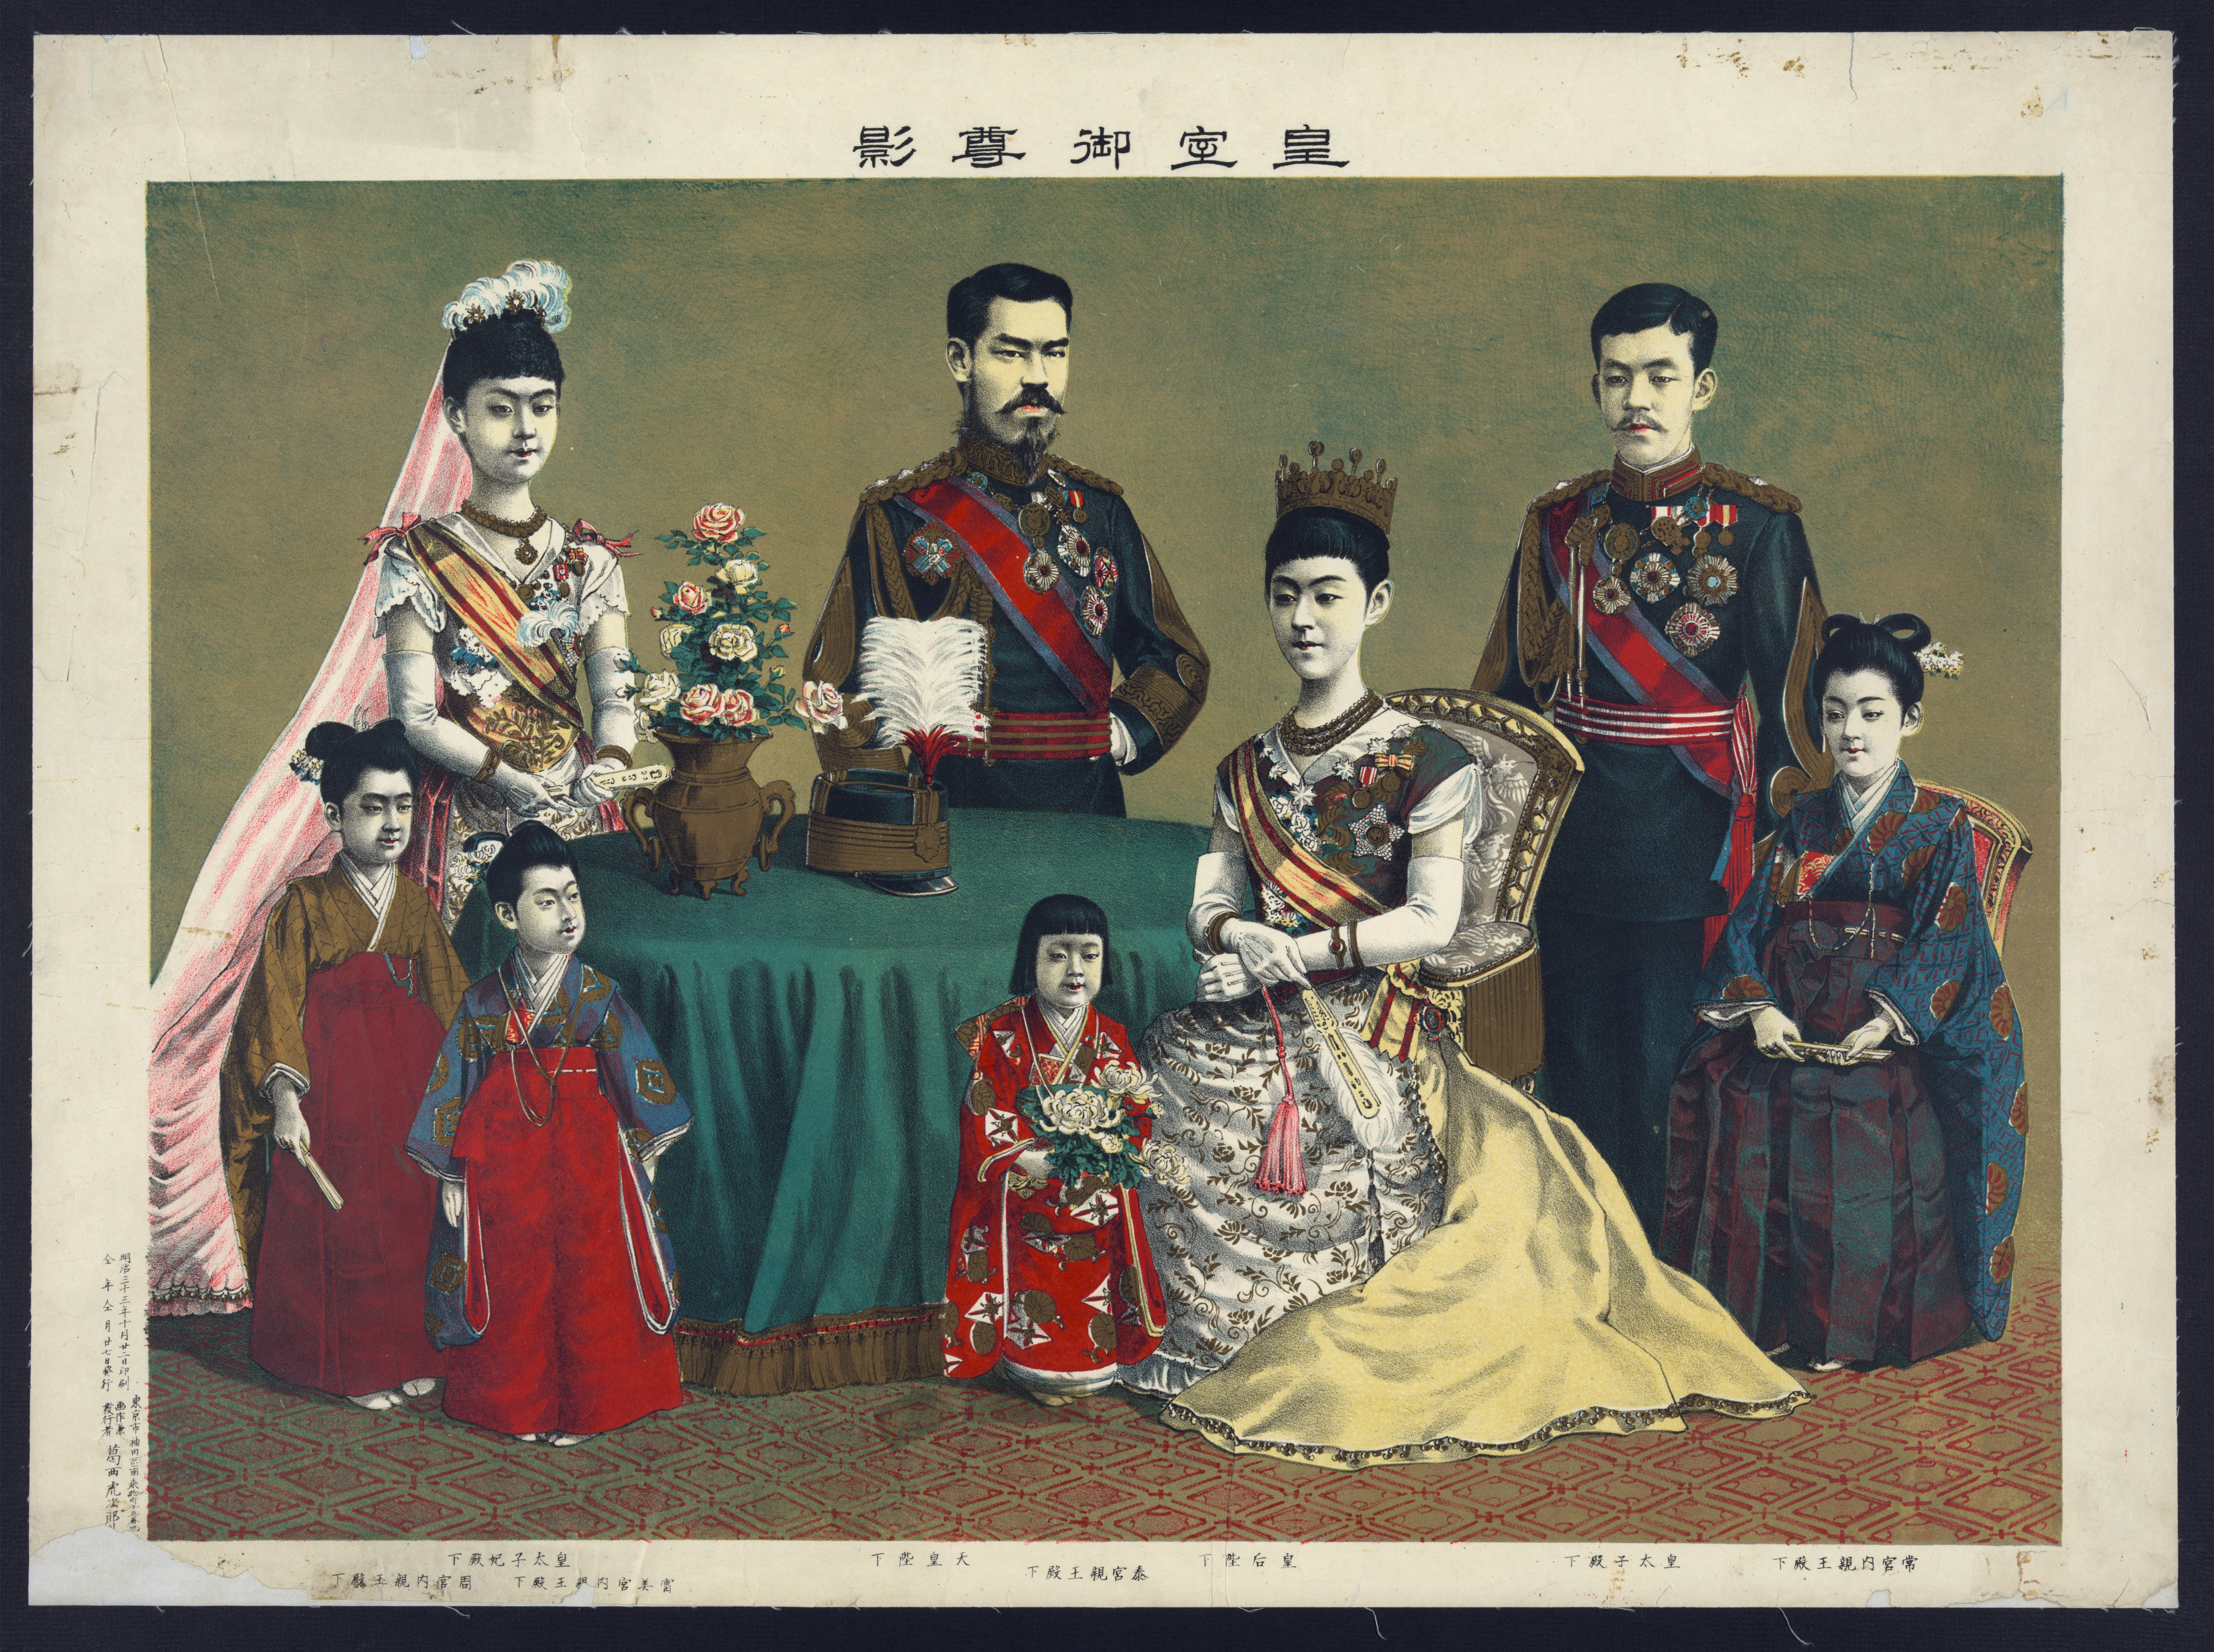 Affects of patriarchy in asian clan